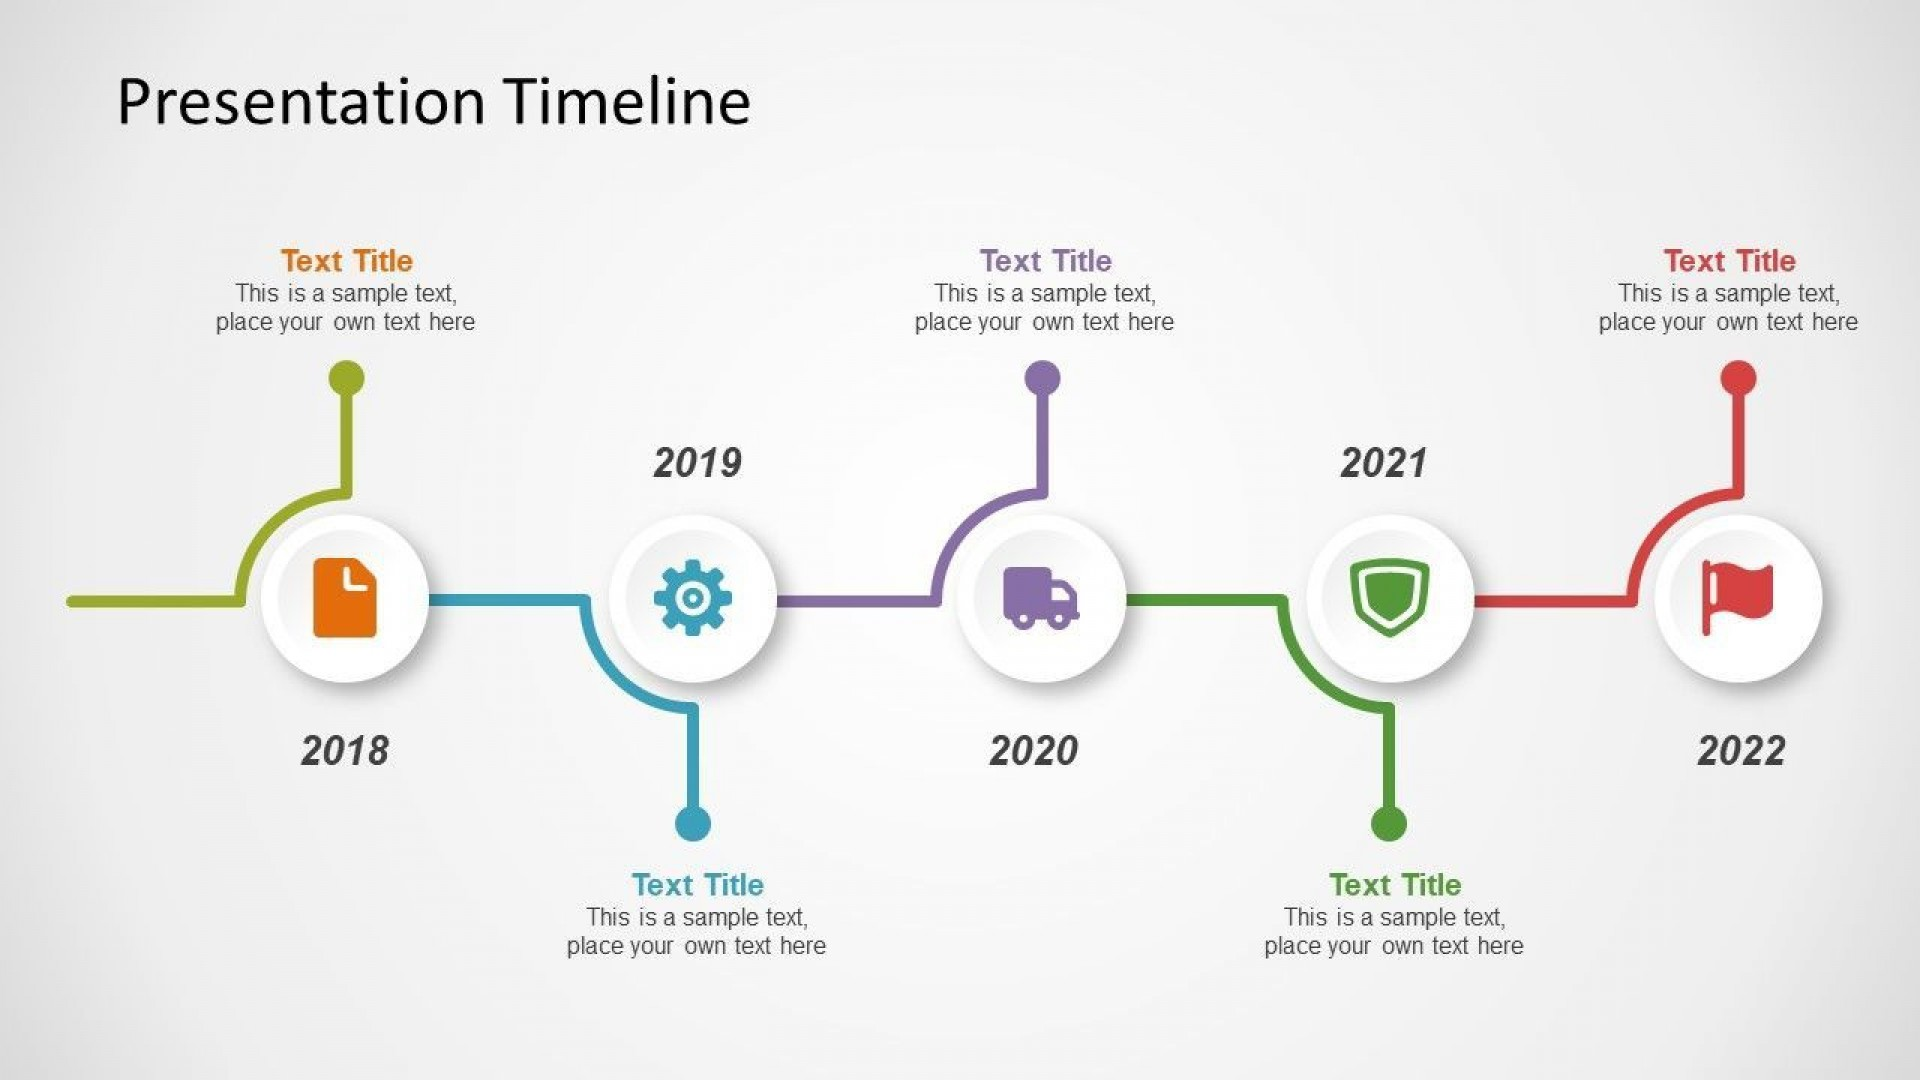 002 Excellent Timeline Sample For Ppt Image  Powerpoint Template 2010 Example1920